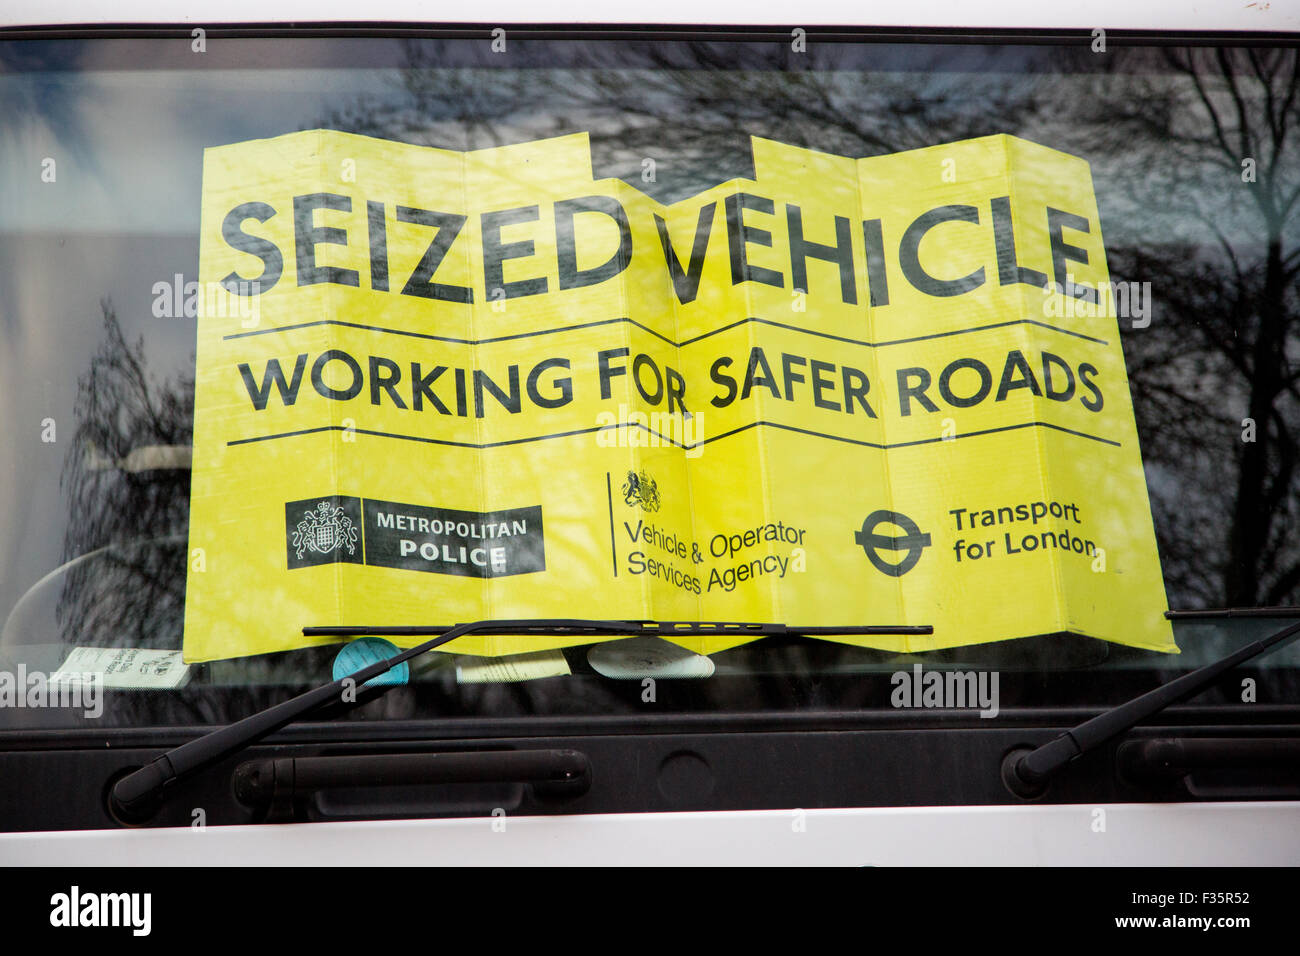 Transport for London's HGV Task Force set up a check point to ensure that vehicles conform to safety requirements - Stock Image